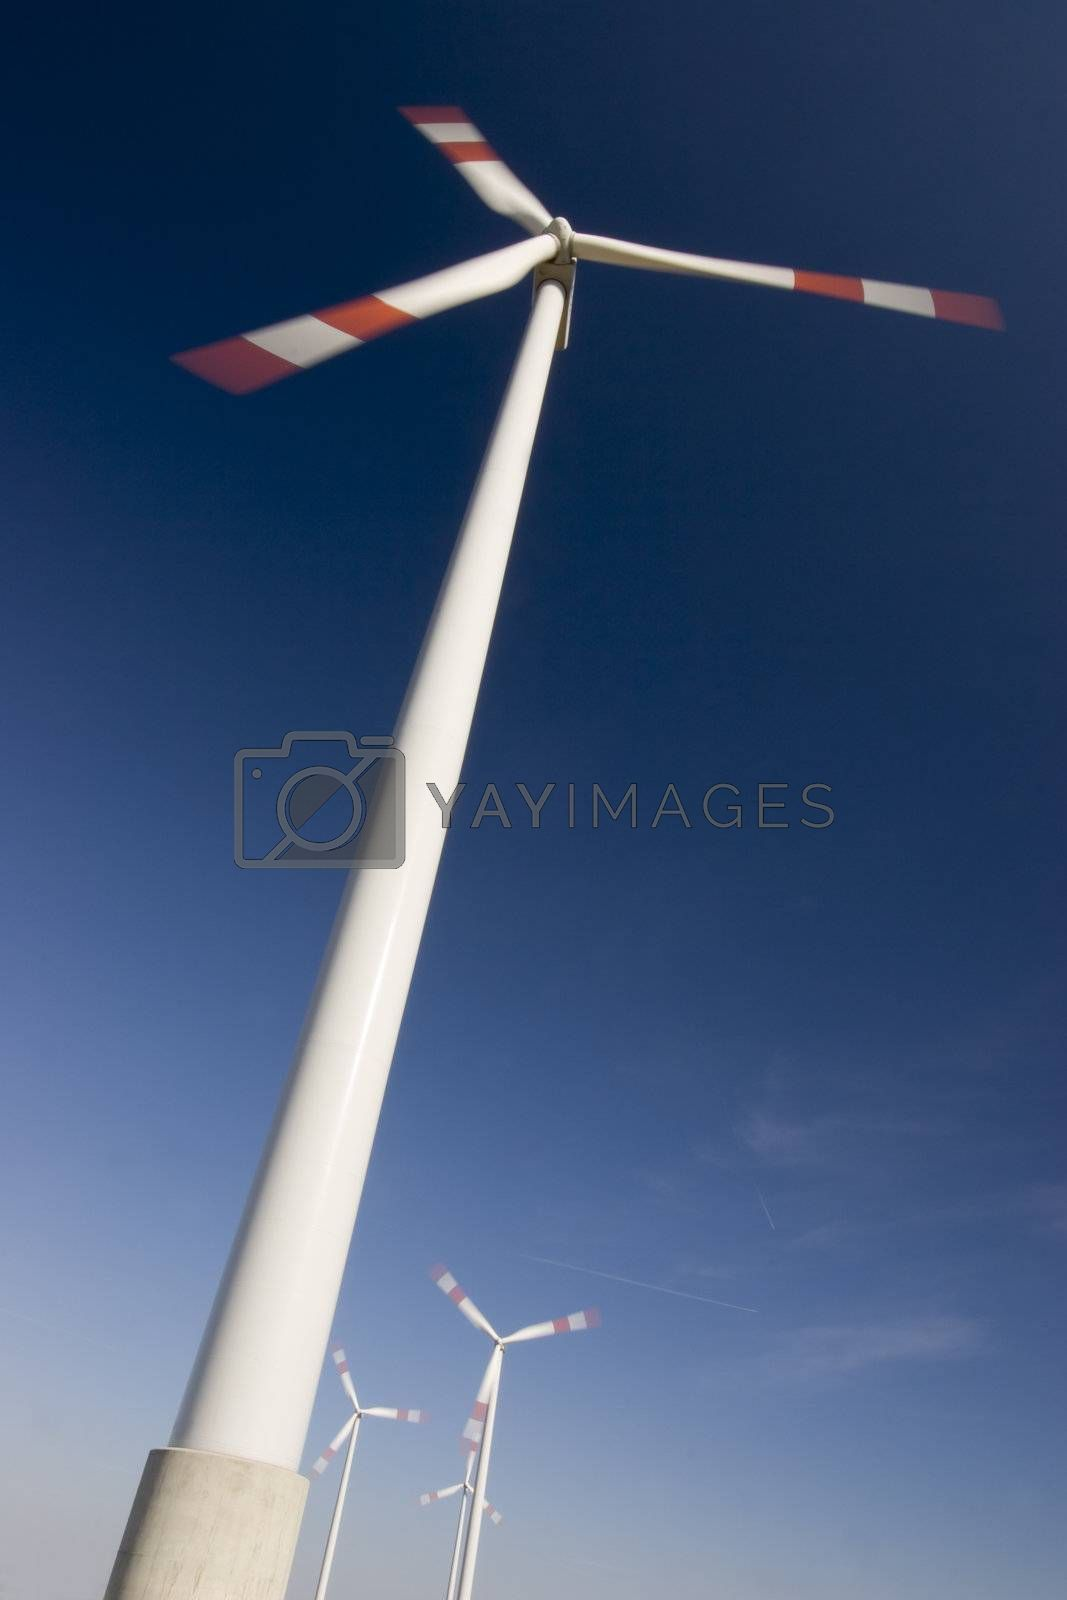 Rotating wind-engines against dark blue sky. Motion blurred propellers.